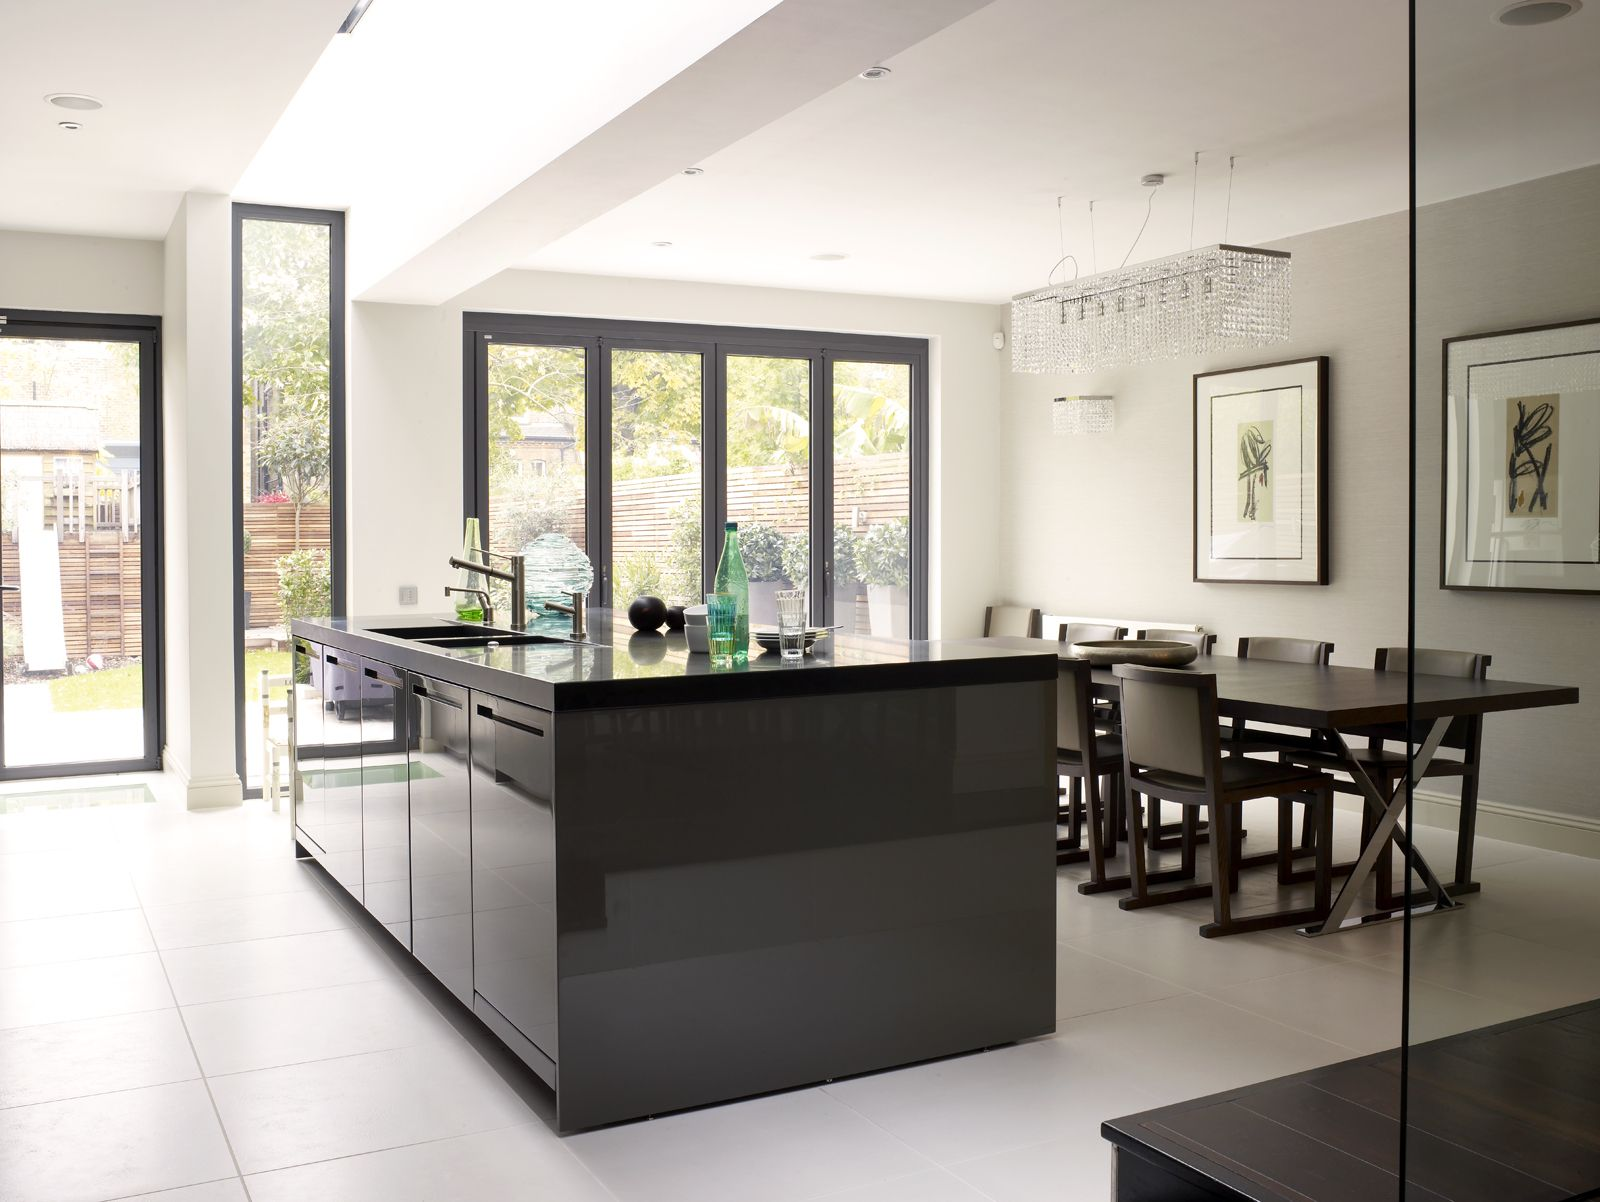 Olbc Were Asked To Transform This Large Family House In